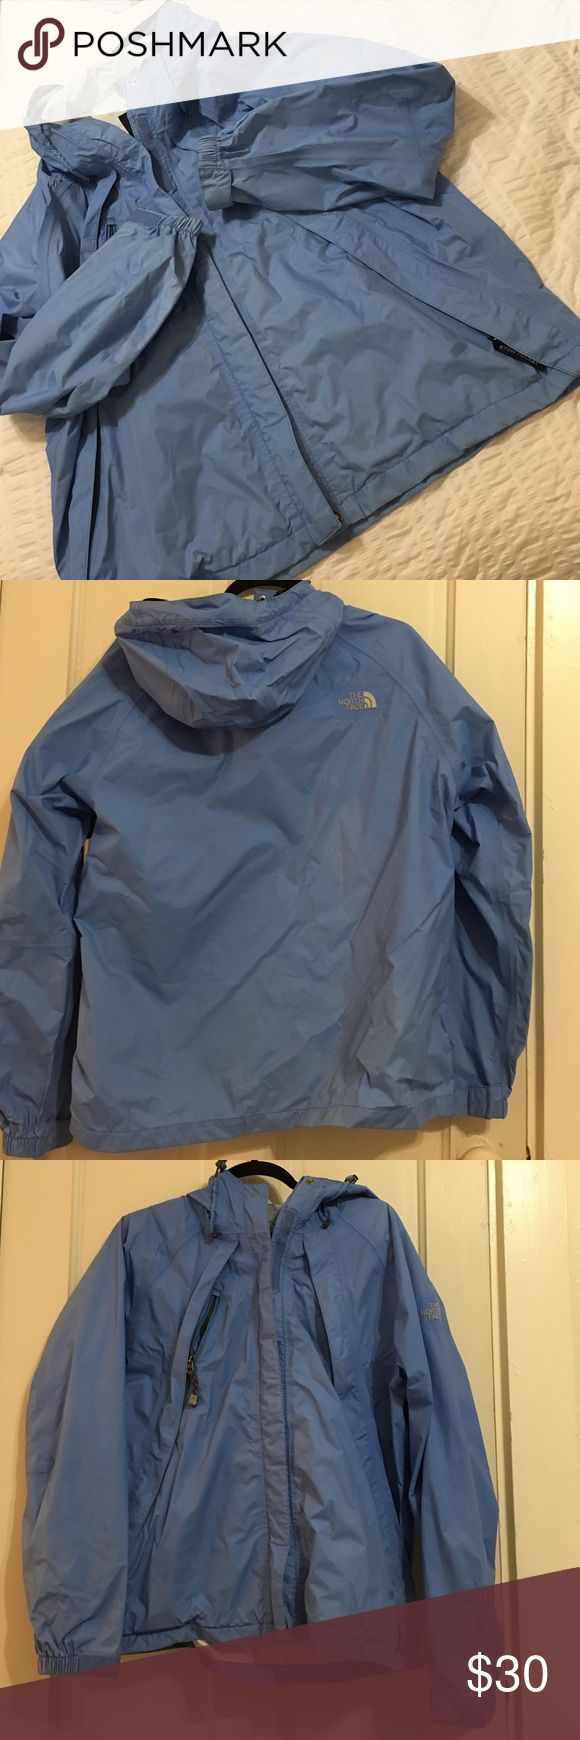 North face Rain Jacket Good condition- Free of smells/ smoke free pet free home. Beautiful light blue color The North Face Jackets & Coats